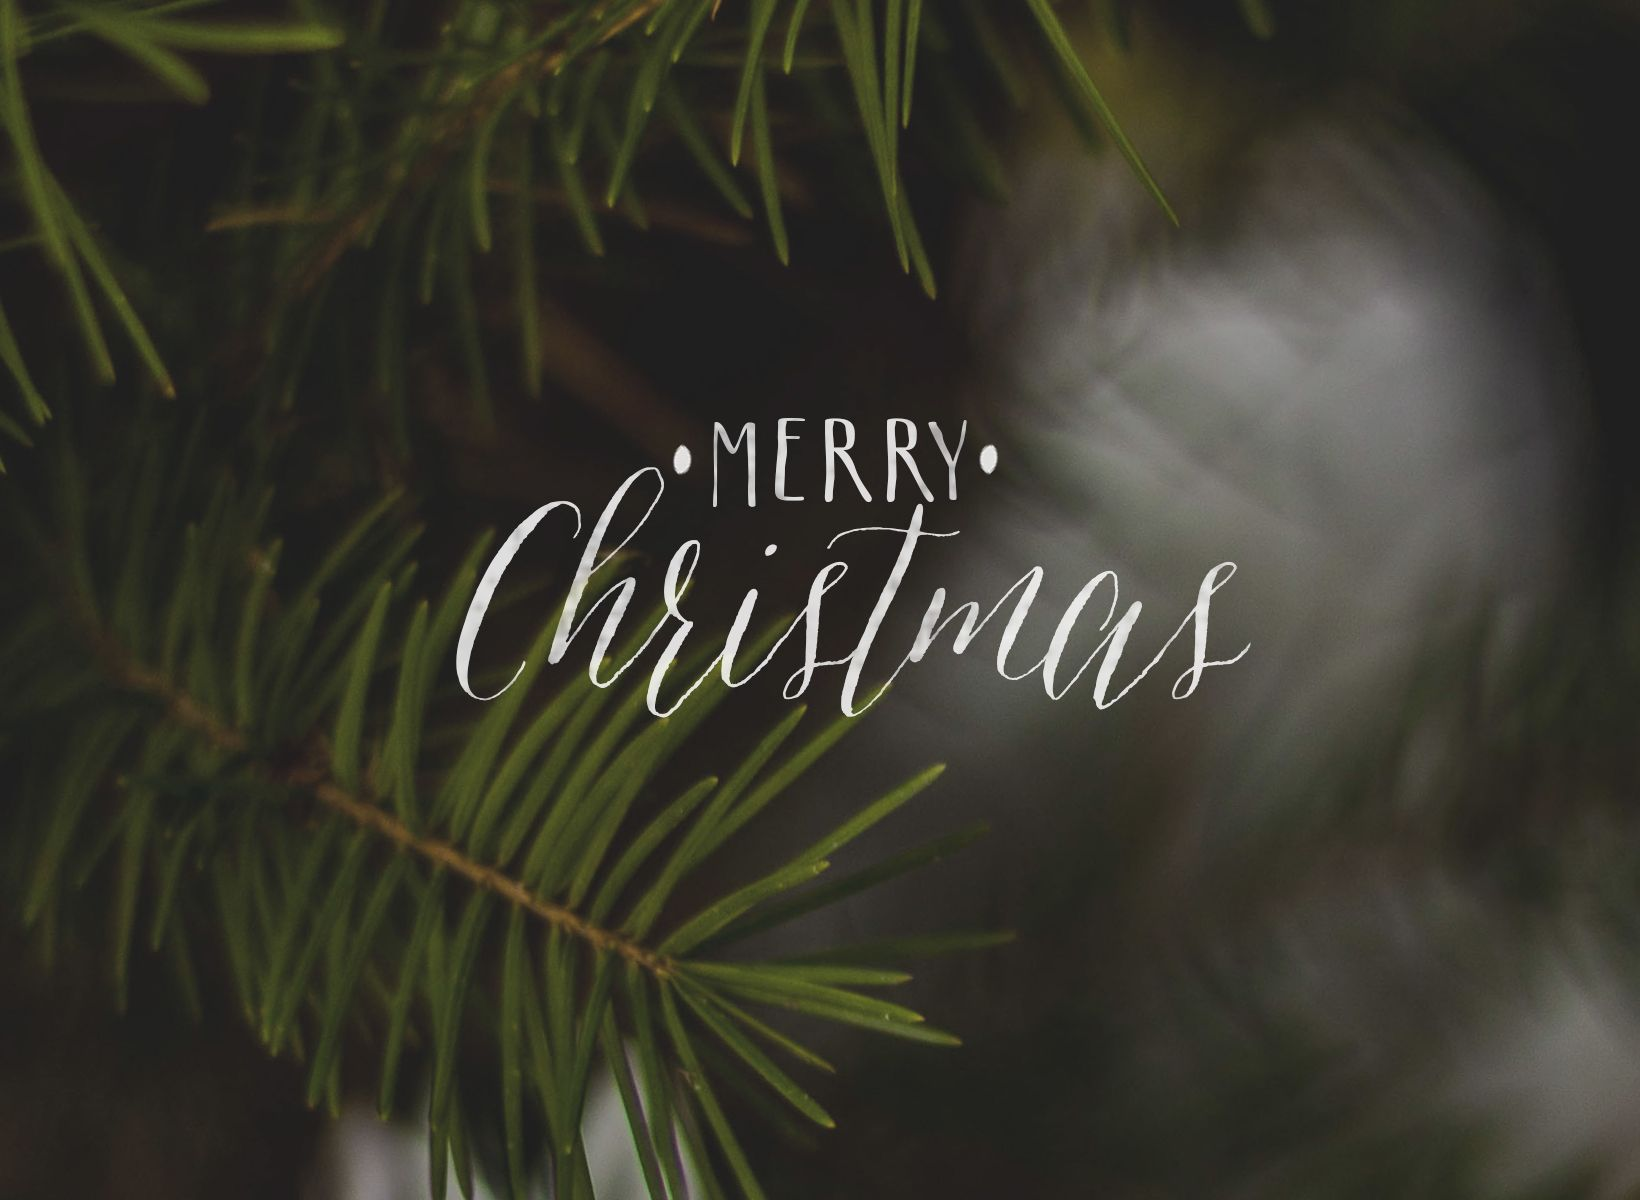 Free Desktop Background for some Christmas joy. Check out